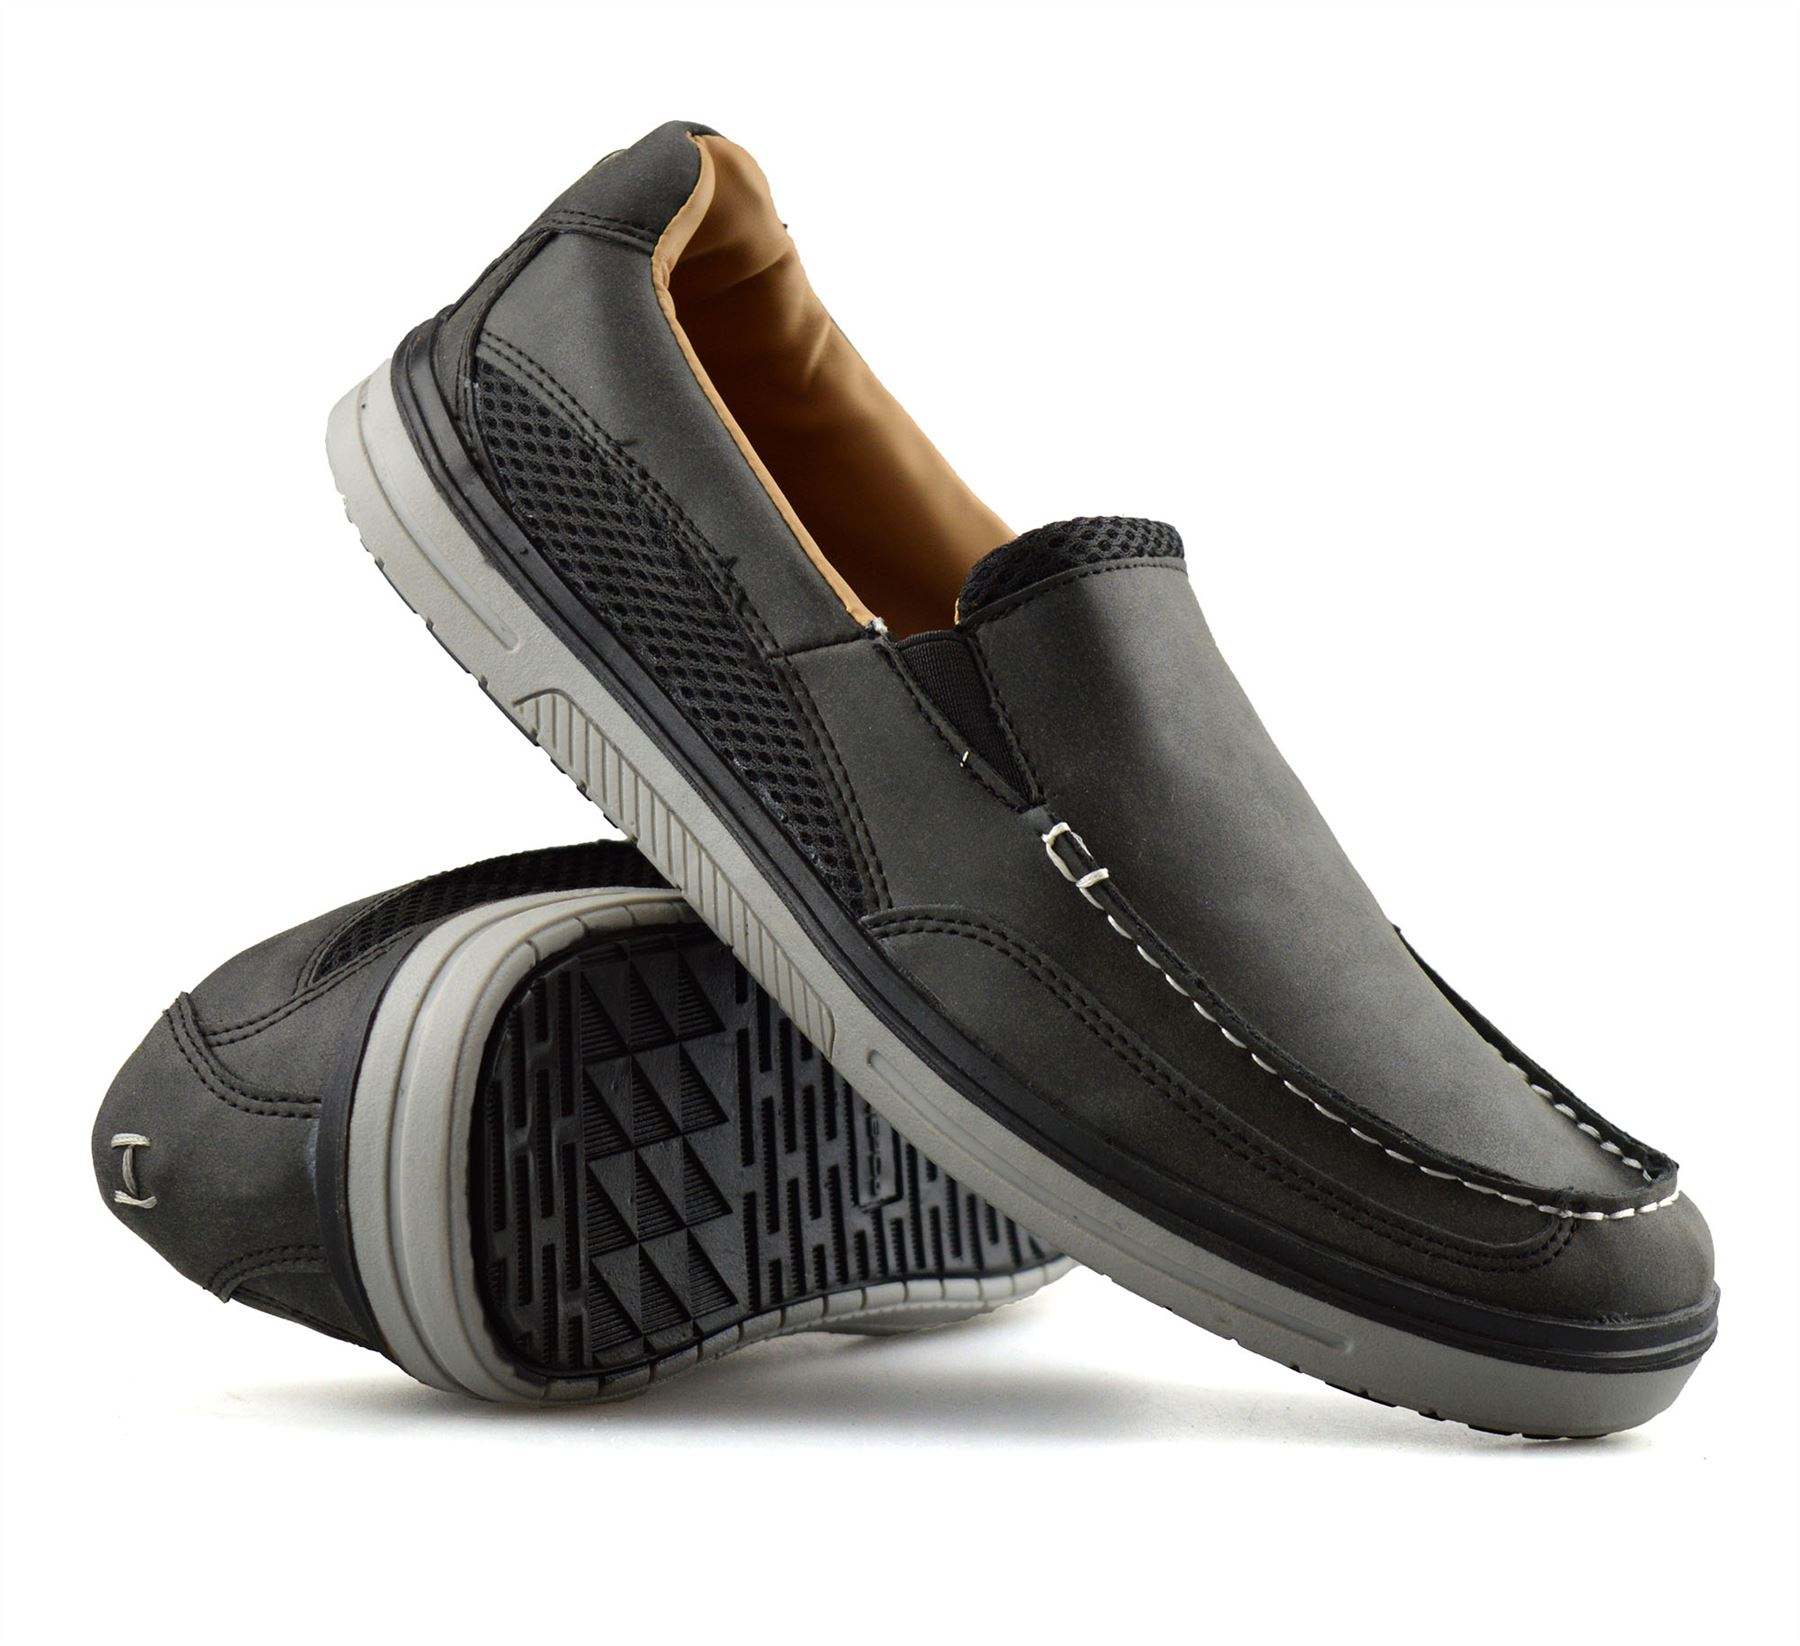 Mens-Casual-Memory-Foam-Slip-On-Walking-Loafers-Moccasin-Driving-Boat-Shoes-Size thumbnail 16